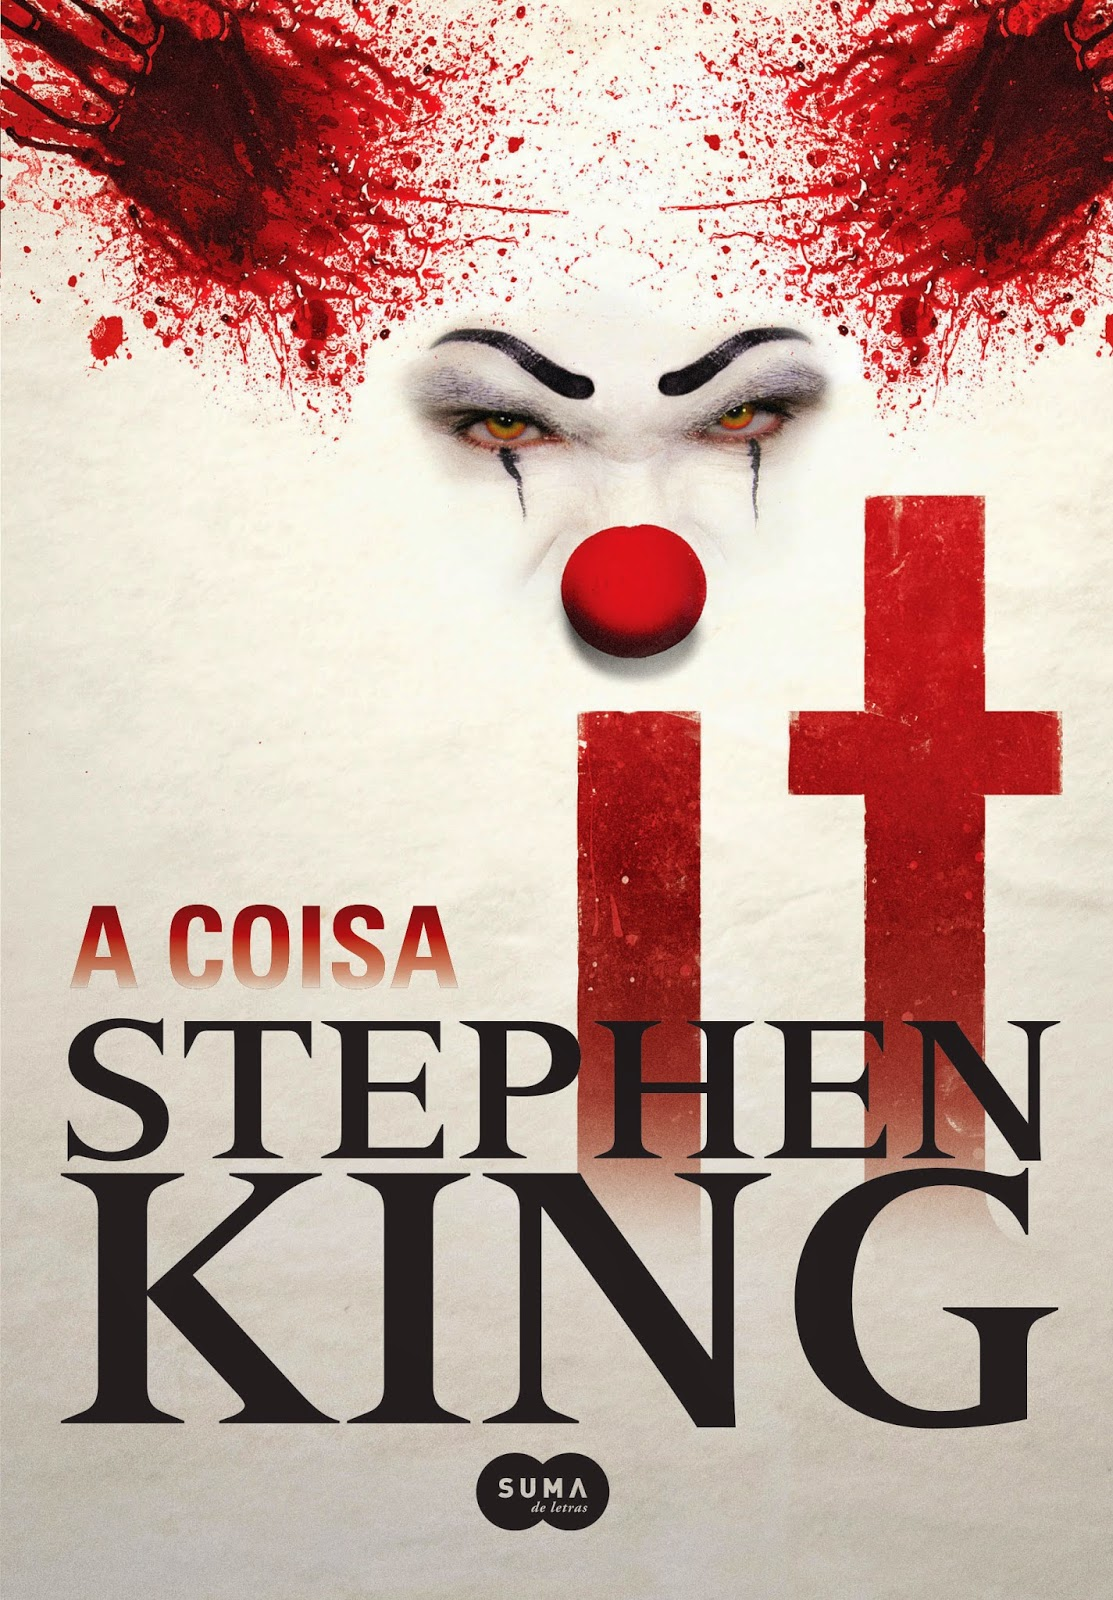 Stephen King A Coisa It